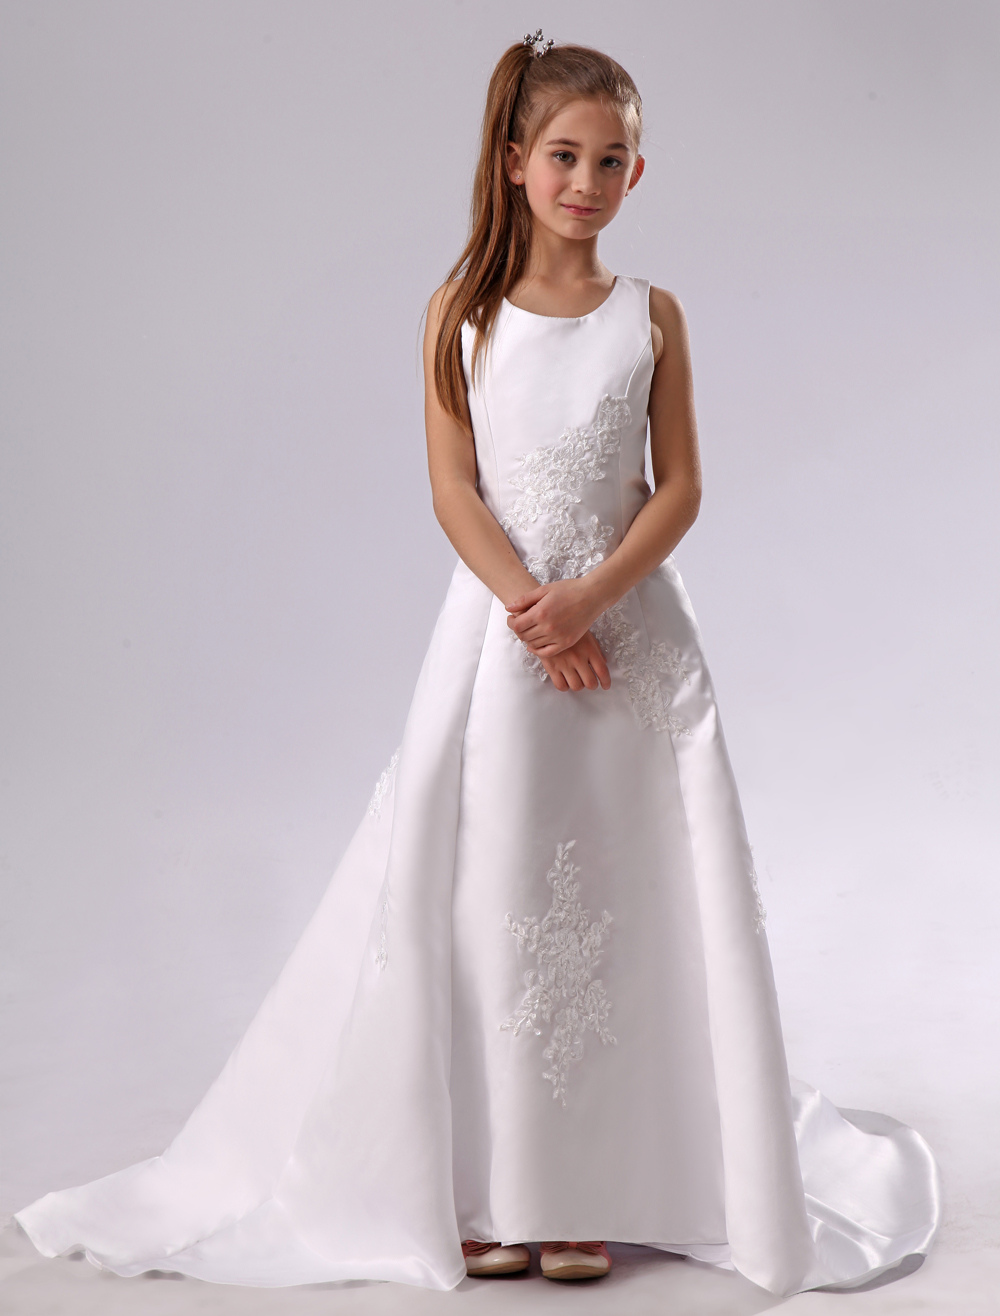 b8c5d4fd60b White Flower Girl Dress Backless Applique Satin Dress - Milanoo.com